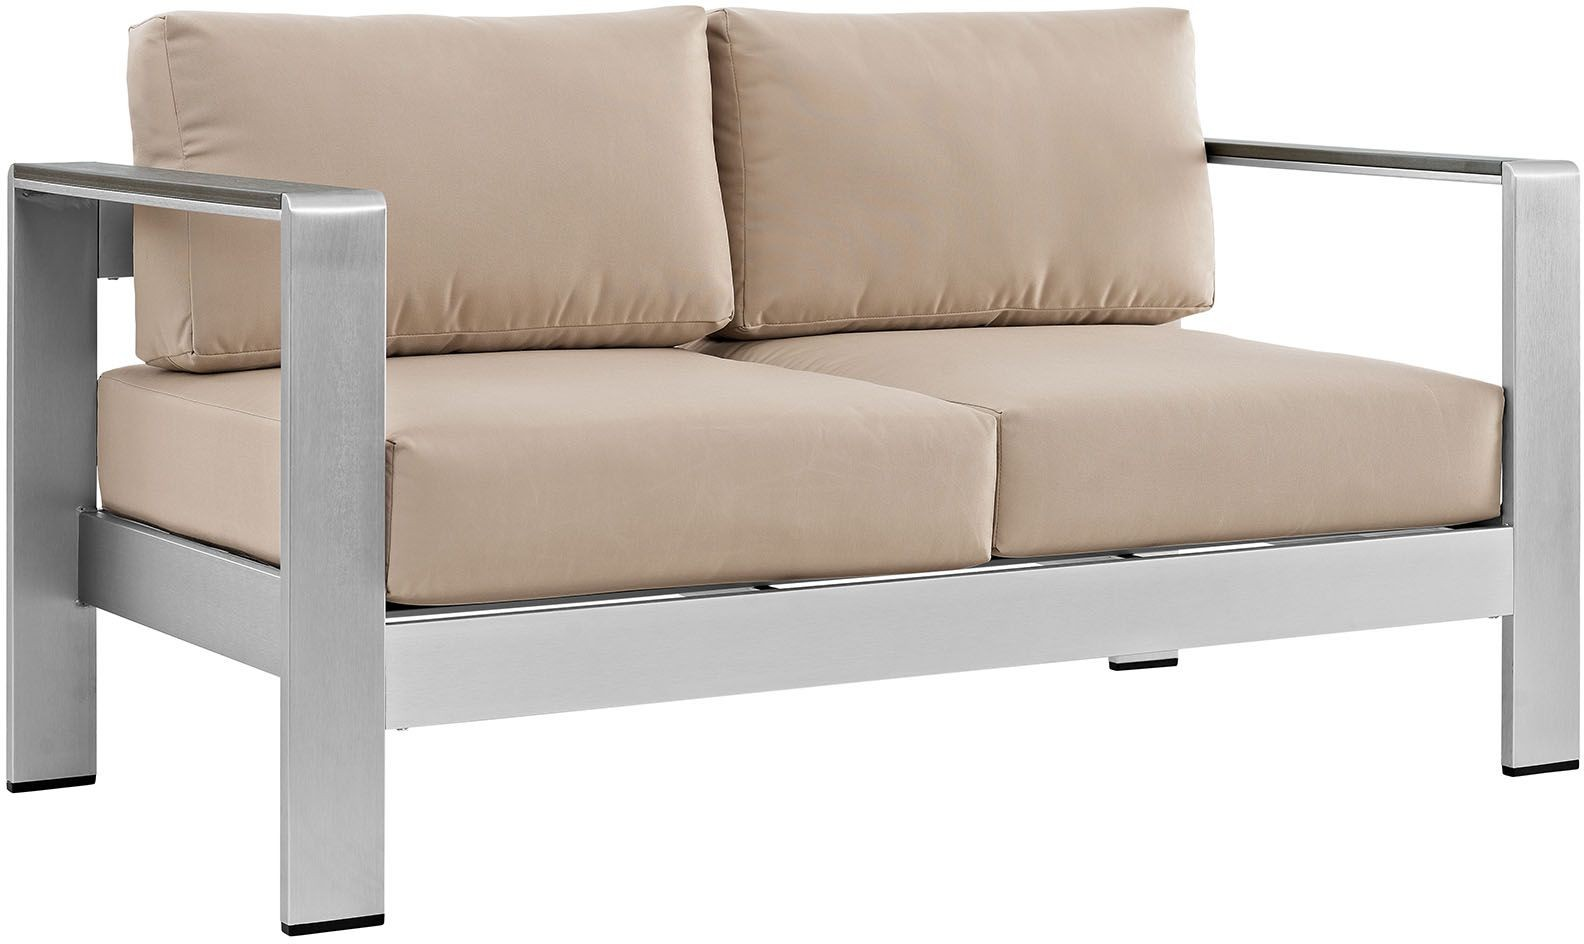 Shore Silver Beige Aluminum Outdoor Patio Loveseat From Renegade Coleman Furniture